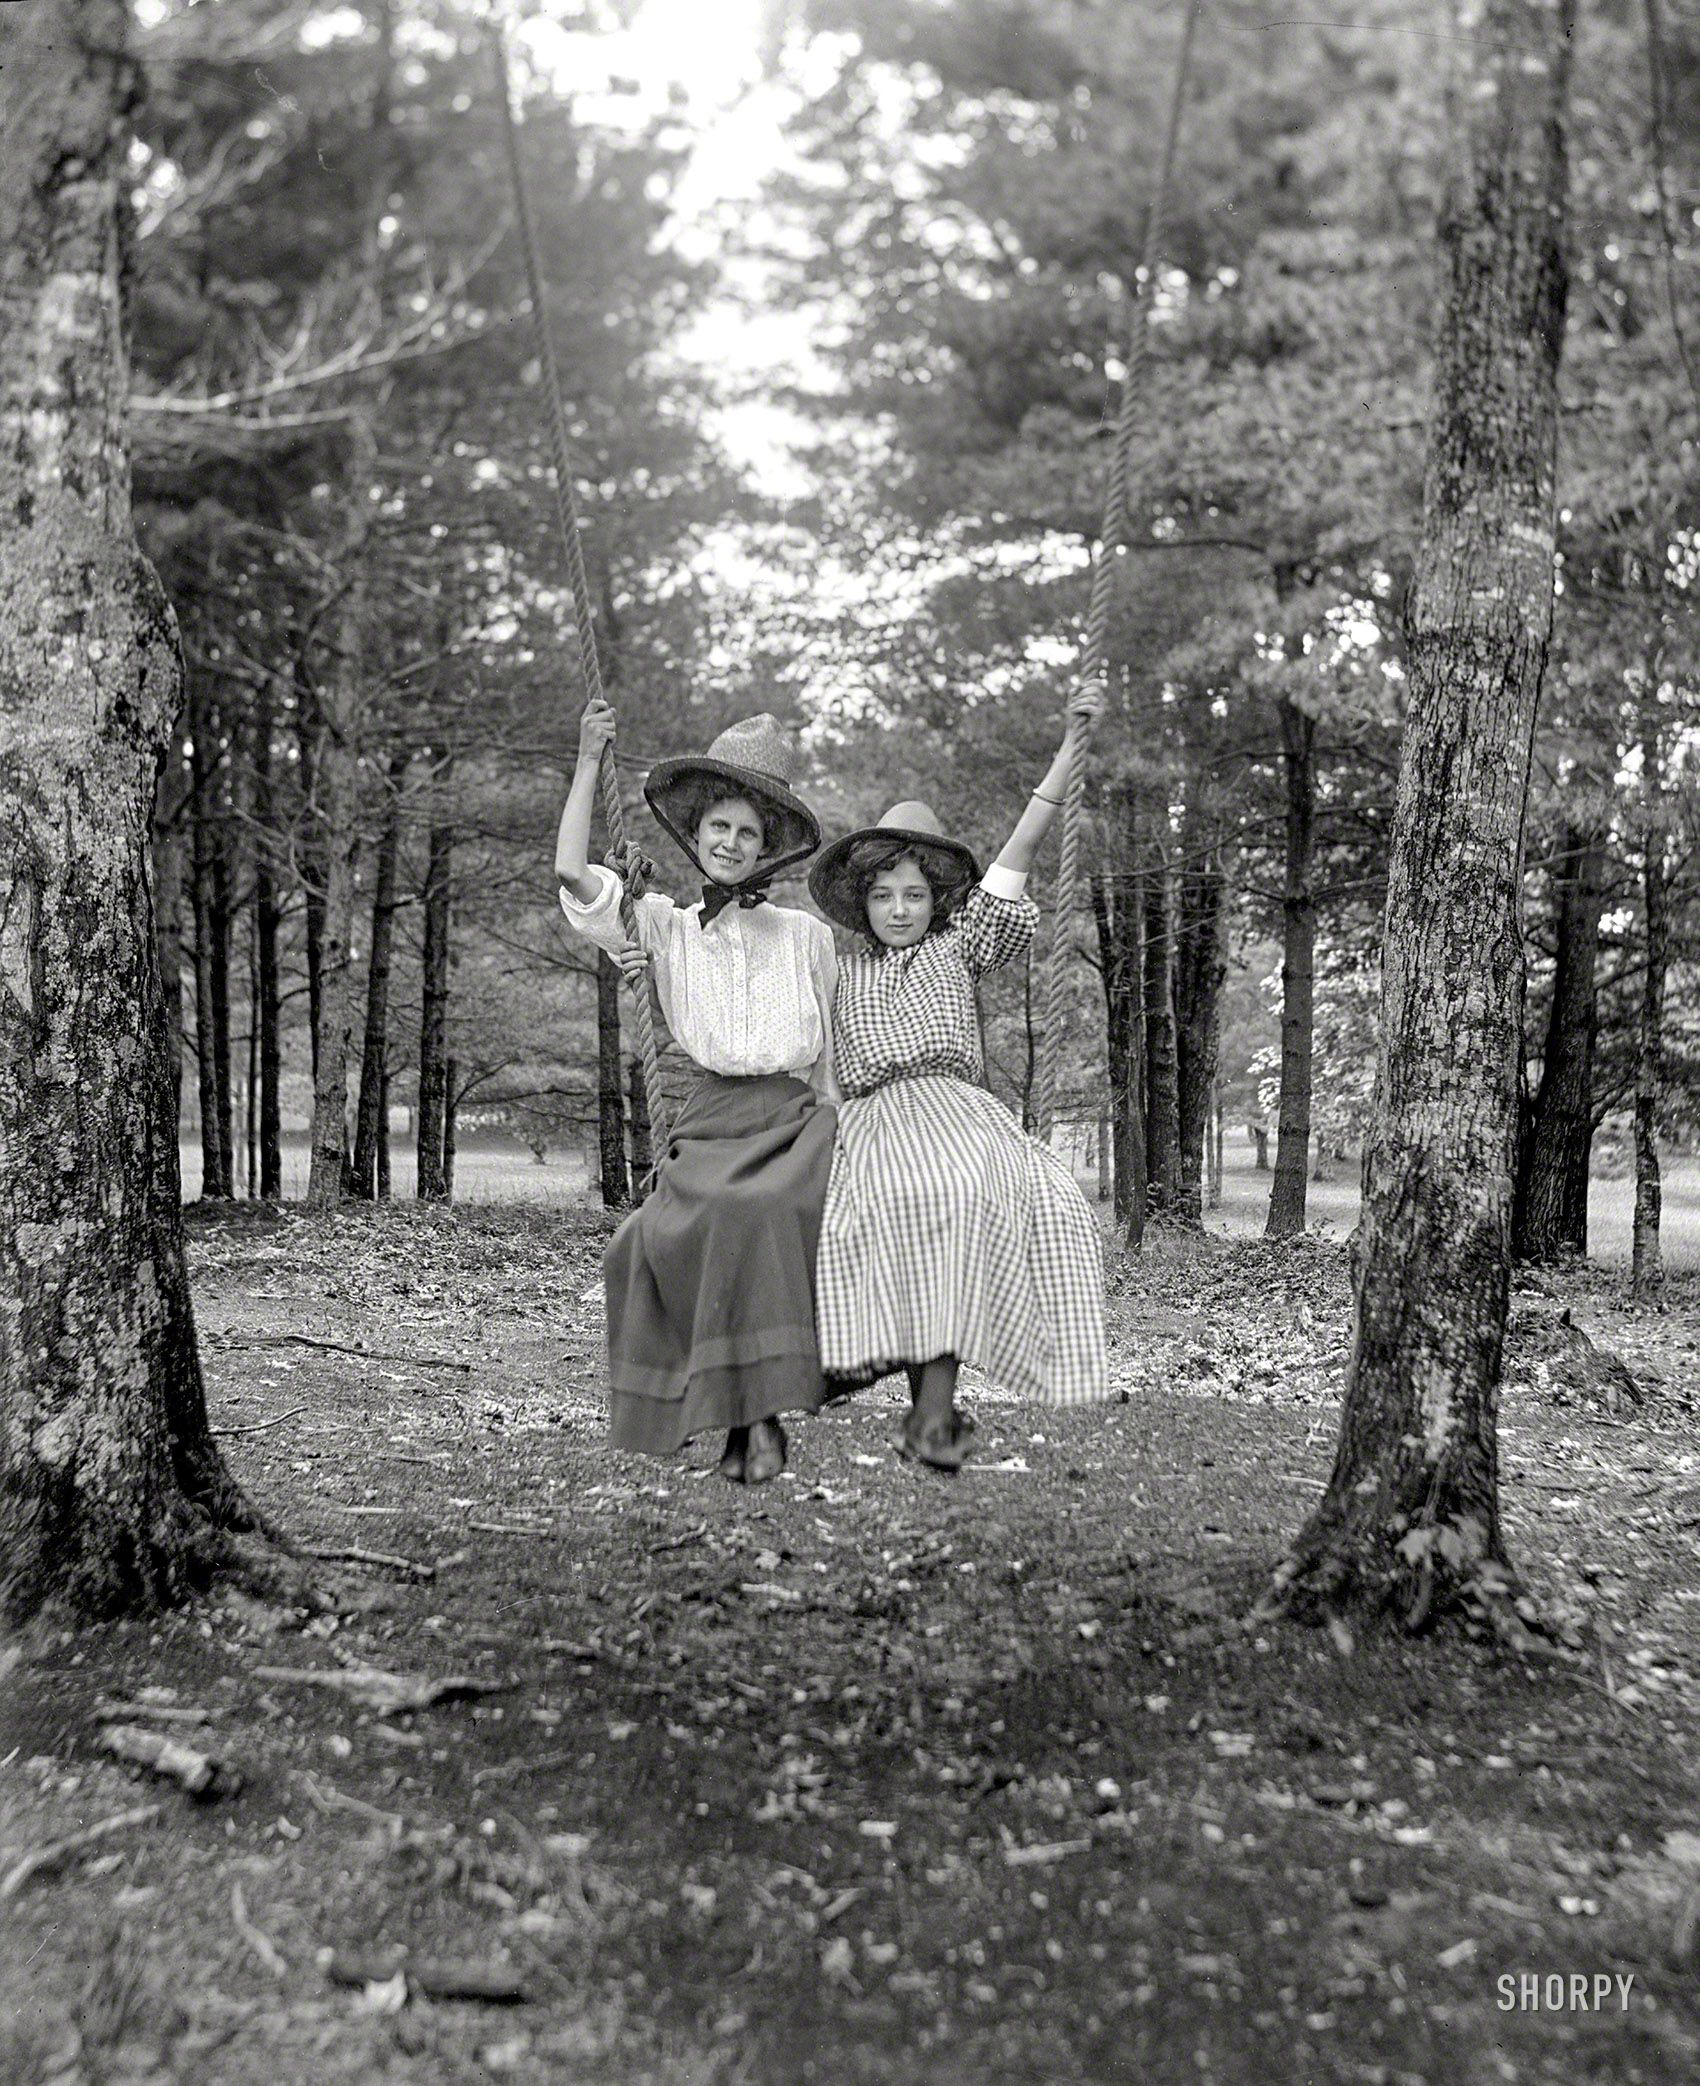 Shorpy Historic Picture Archive Swingers 1900 High Resolution Photo Photo Vintage Photos Old Photos